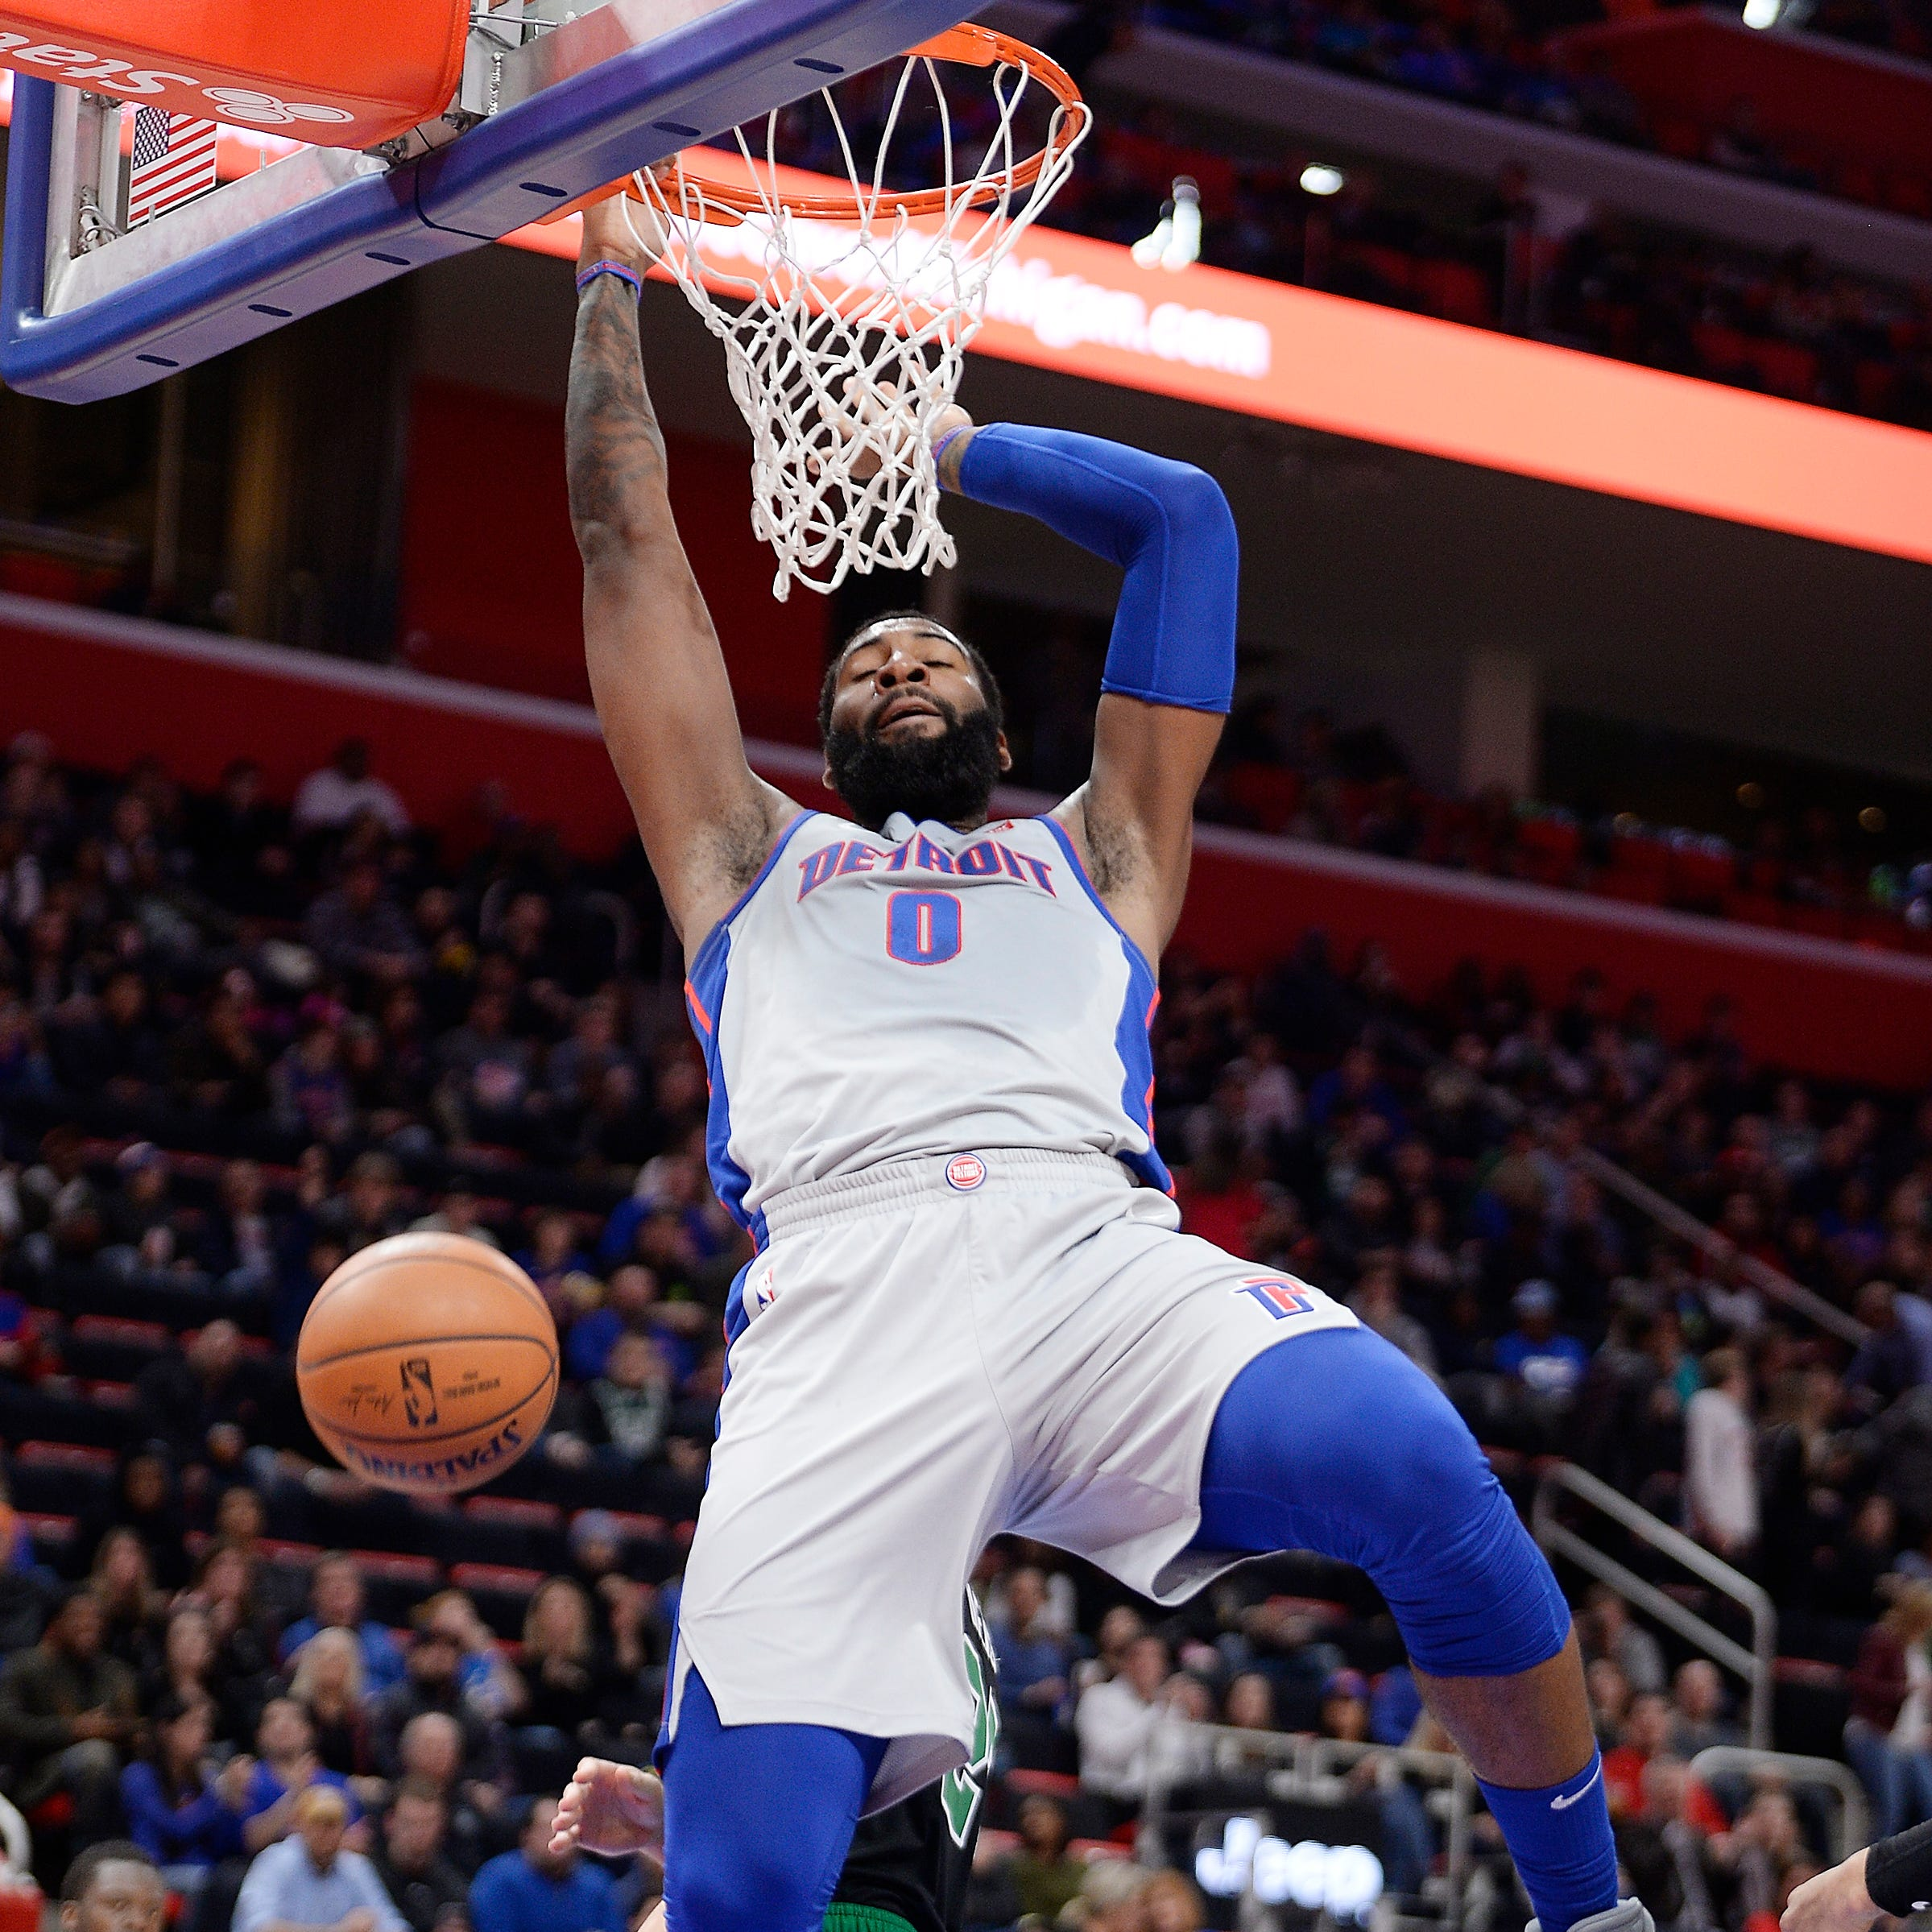 Beard: Major changes won't come quickly for Pistons